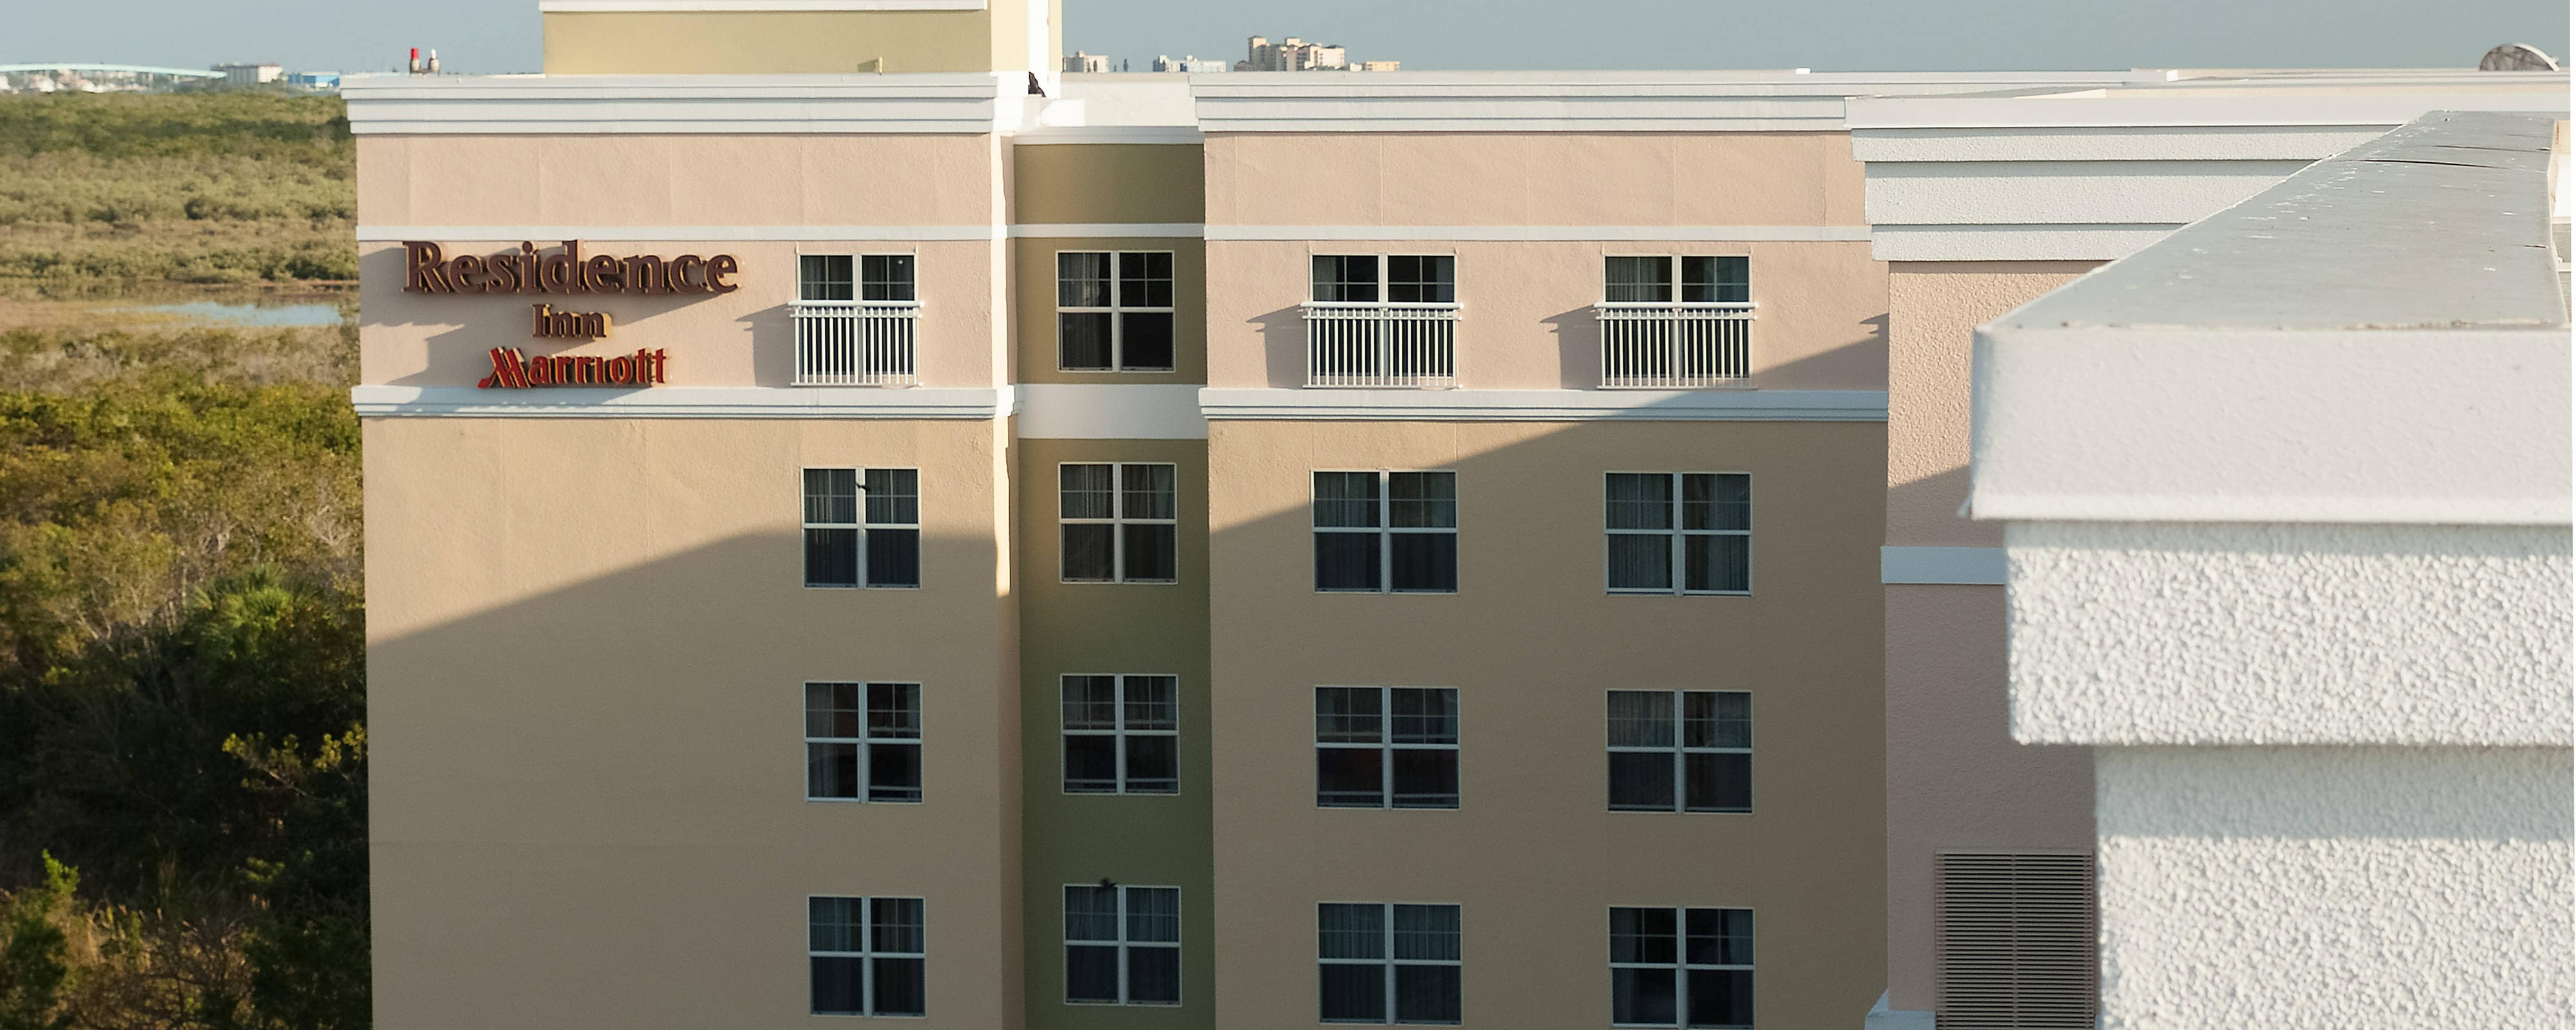 d36b45bc5 Hotels in Fort Myers, Florida | Fort Myers, Florida, Hotels